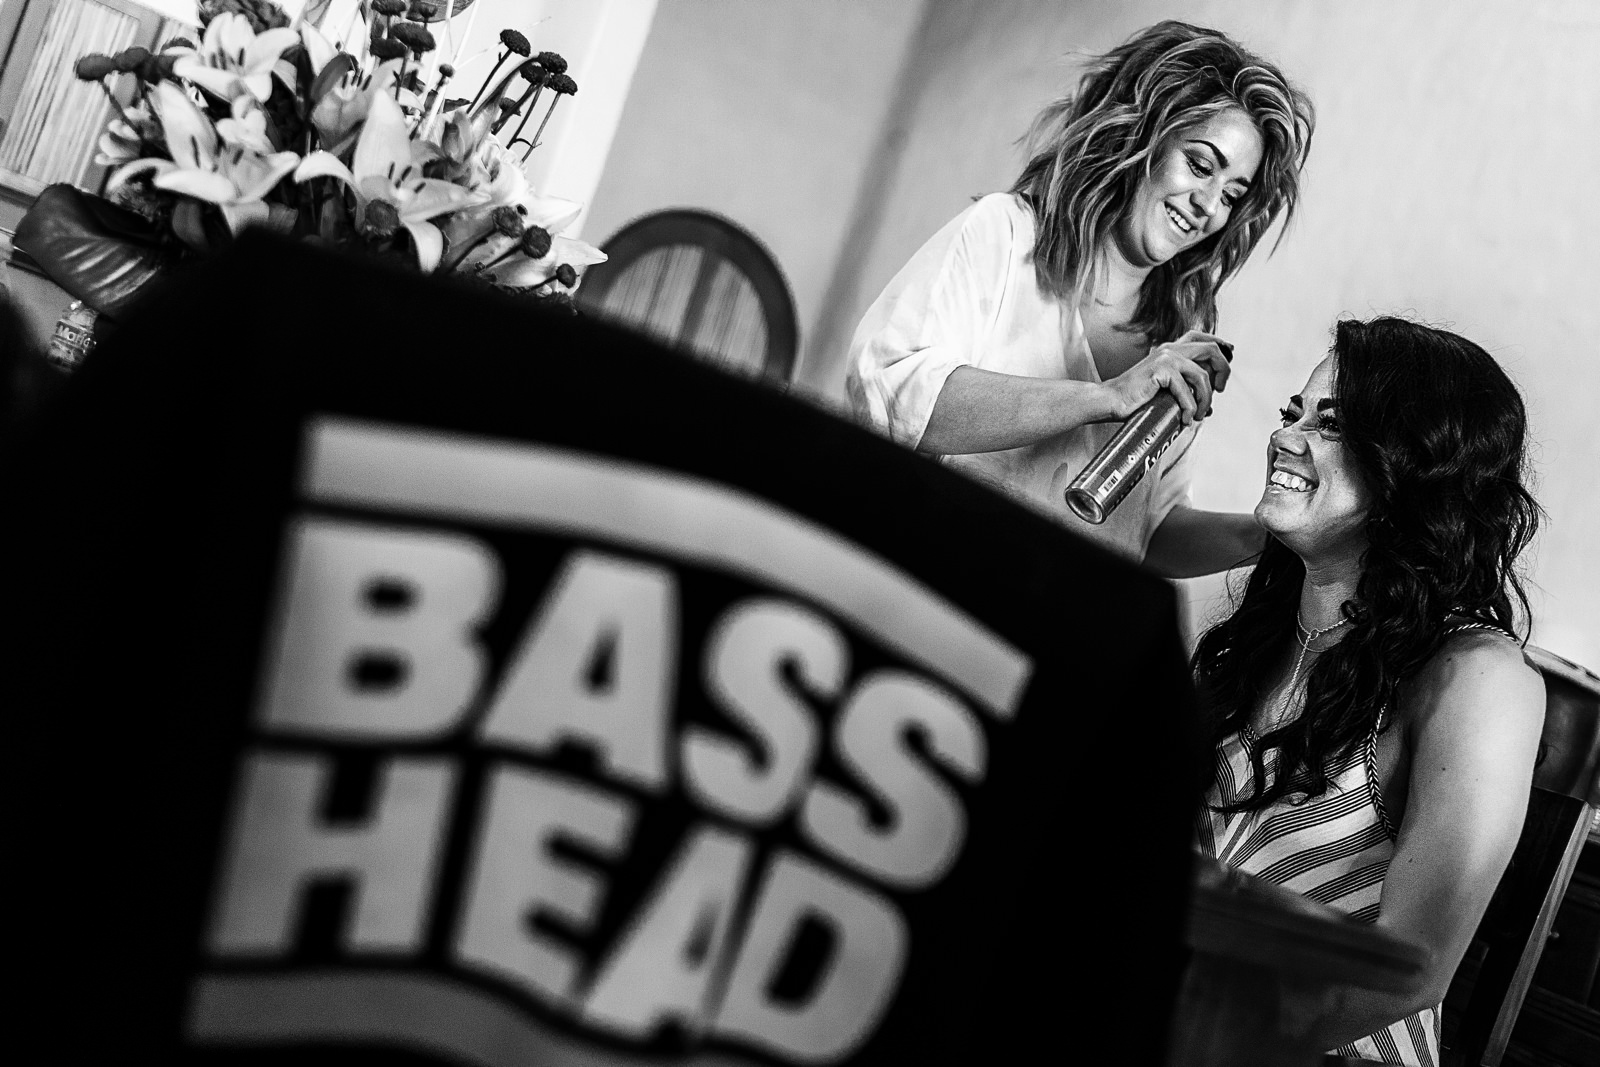 Two girls getting ready for a wedding and sharing a laugh, a BASS HEAD T-shirt is hanged over a chair in the foreground